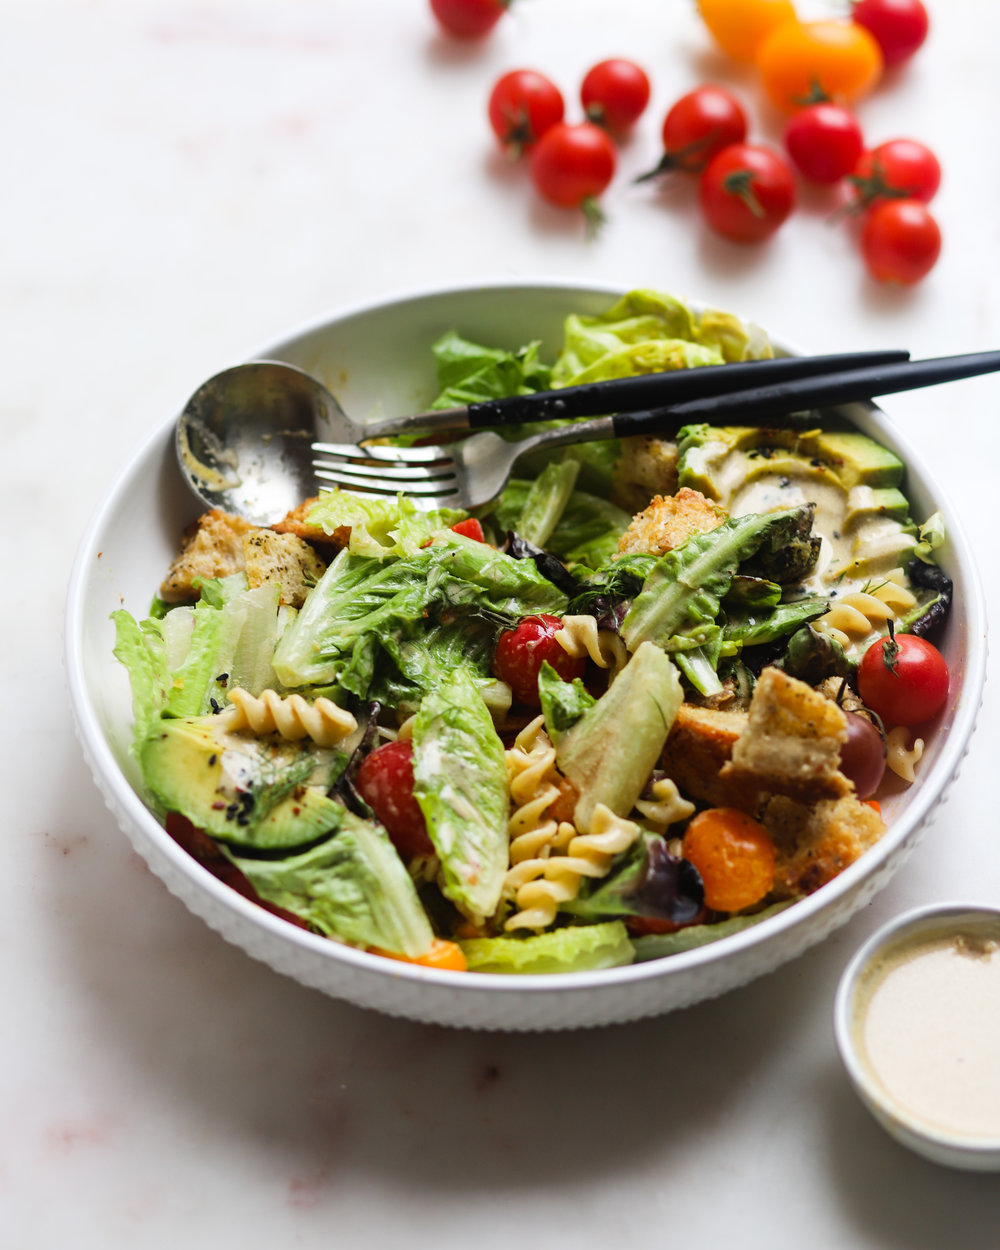 Loaded Pasta Caesar Salad (Vegan!)